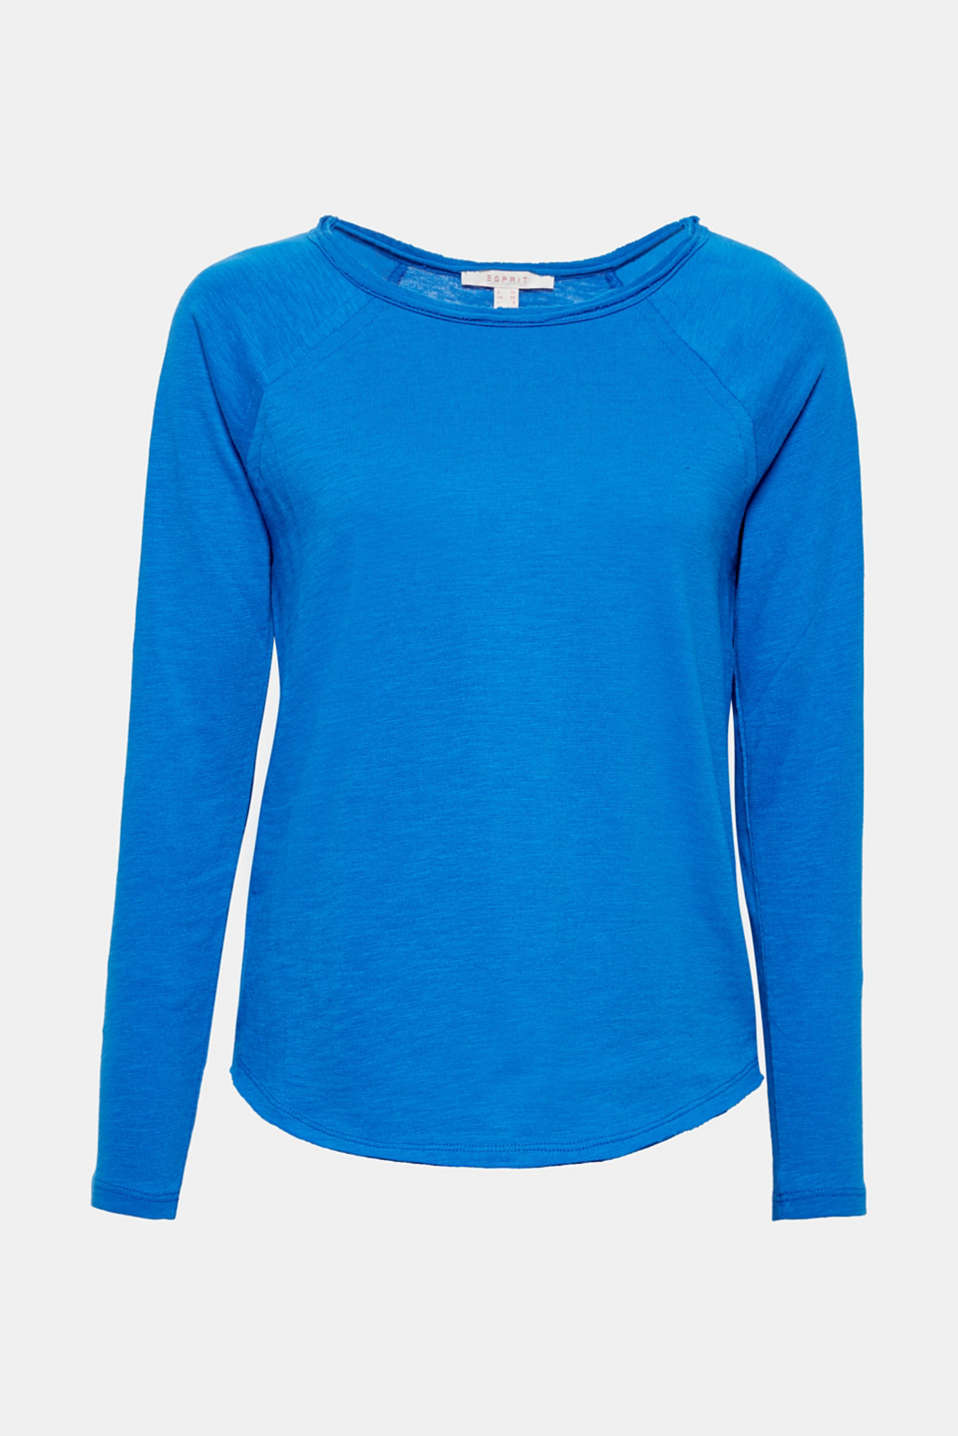 Lightweight and soft on the skin in a super casual design: unfinished edges give this cotton sweatshirt its stylish kick!